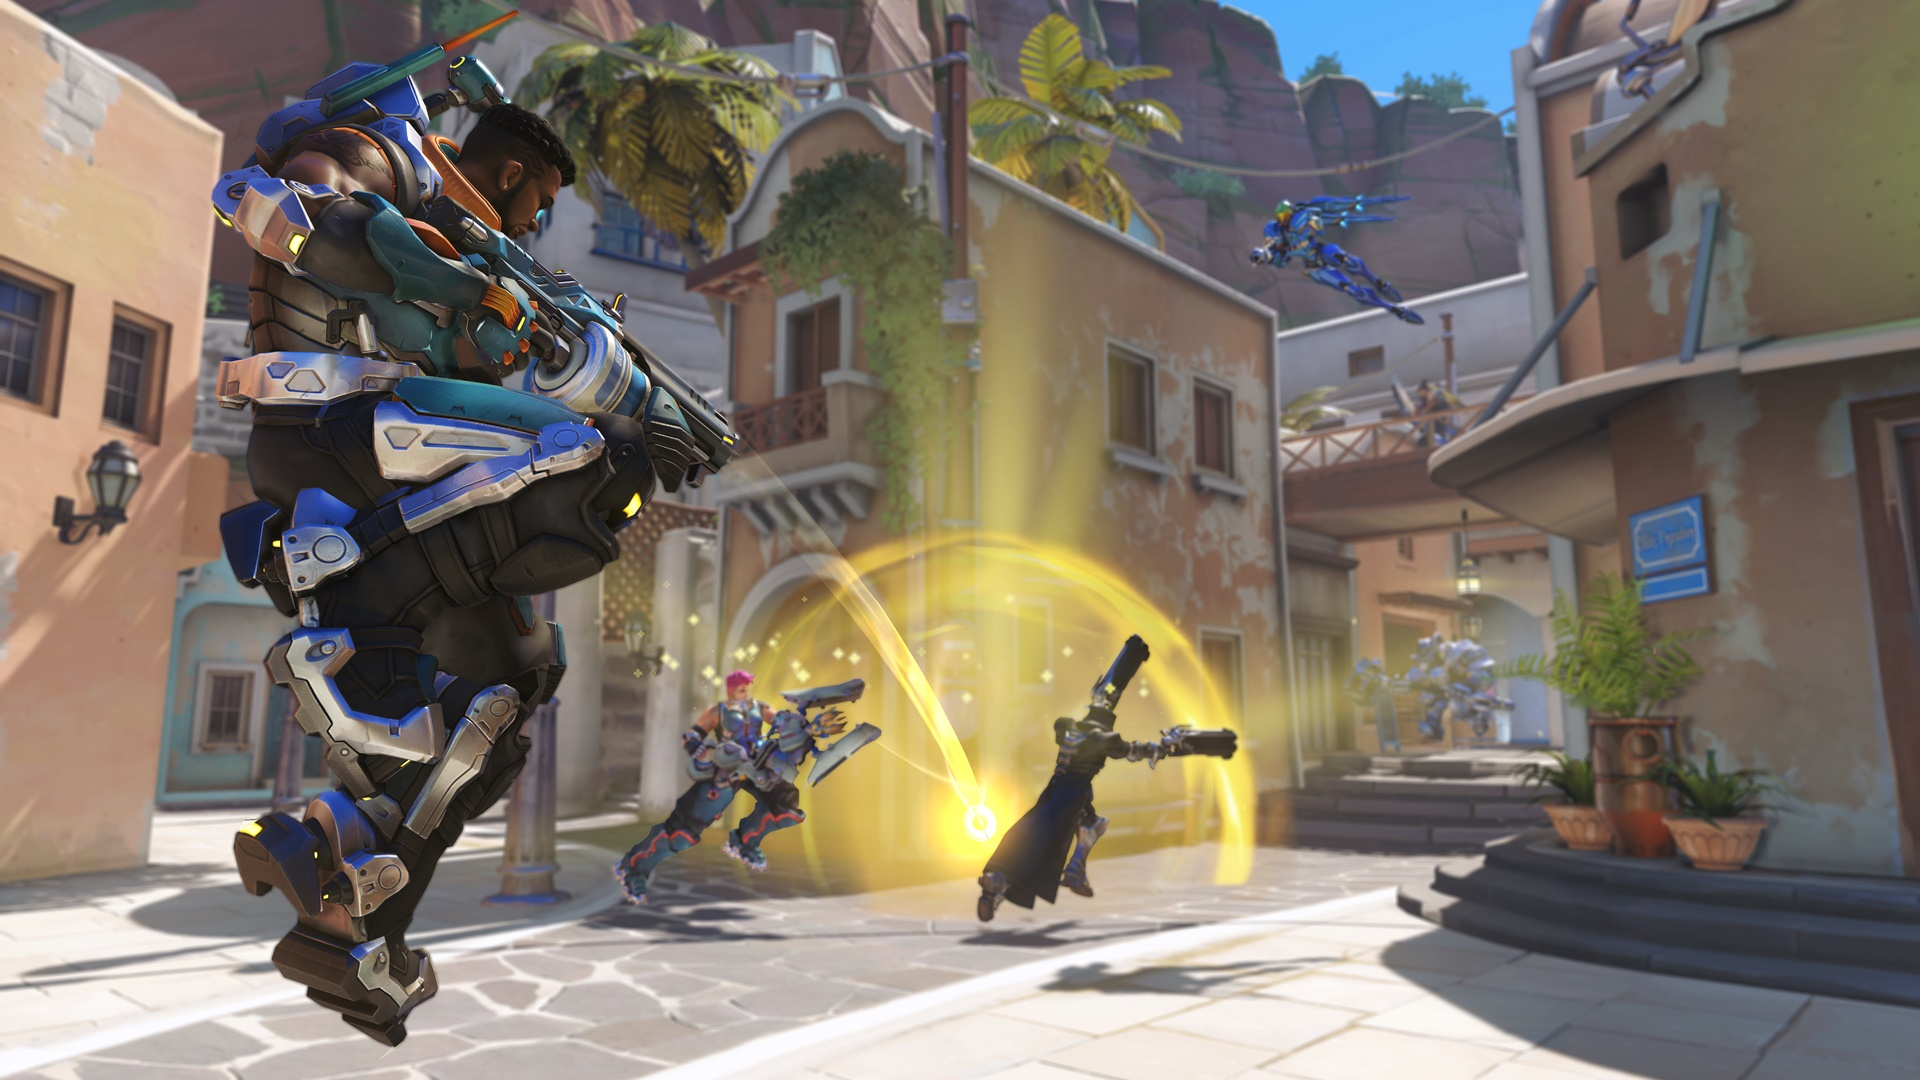 Overwatch adds new hero Baptiste